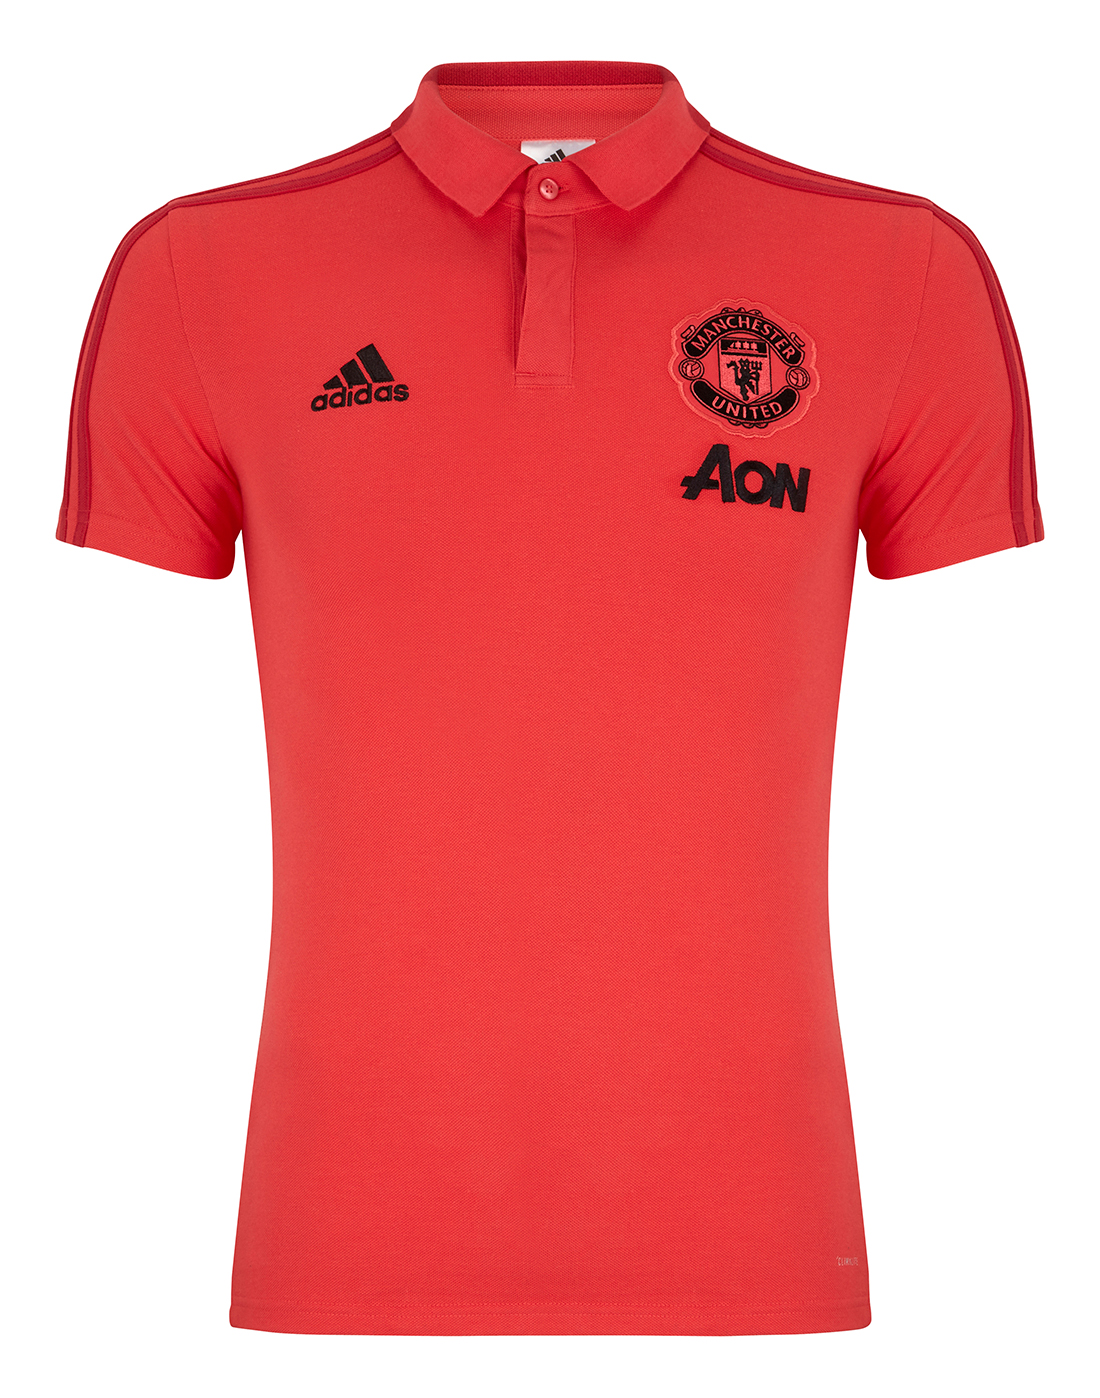 Man United Red Polo Shirt Adidas Life Style Sports